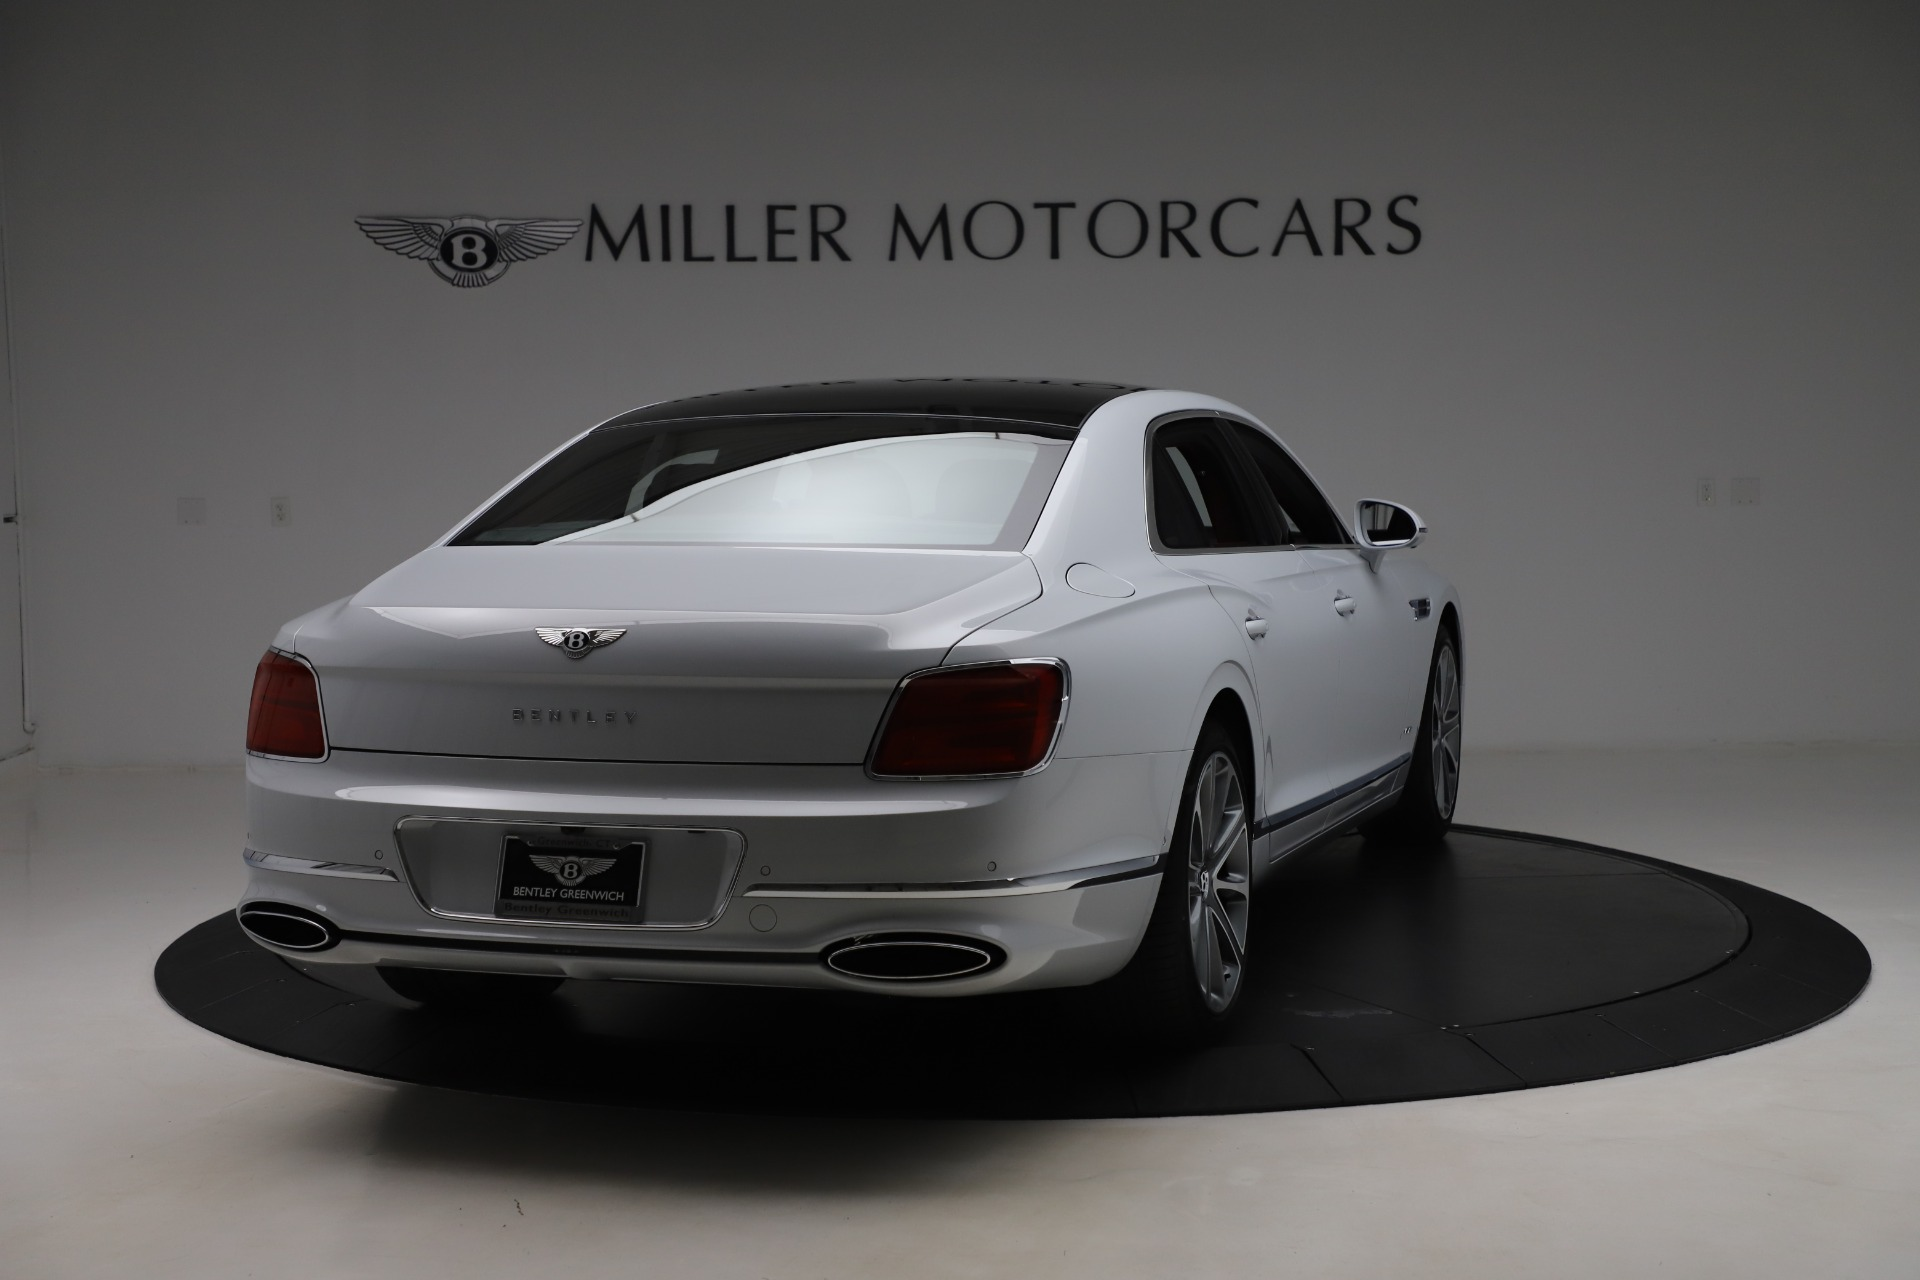 New 2021 Bentley Flying Spur  For Sale In Westport, CT 3230_p7